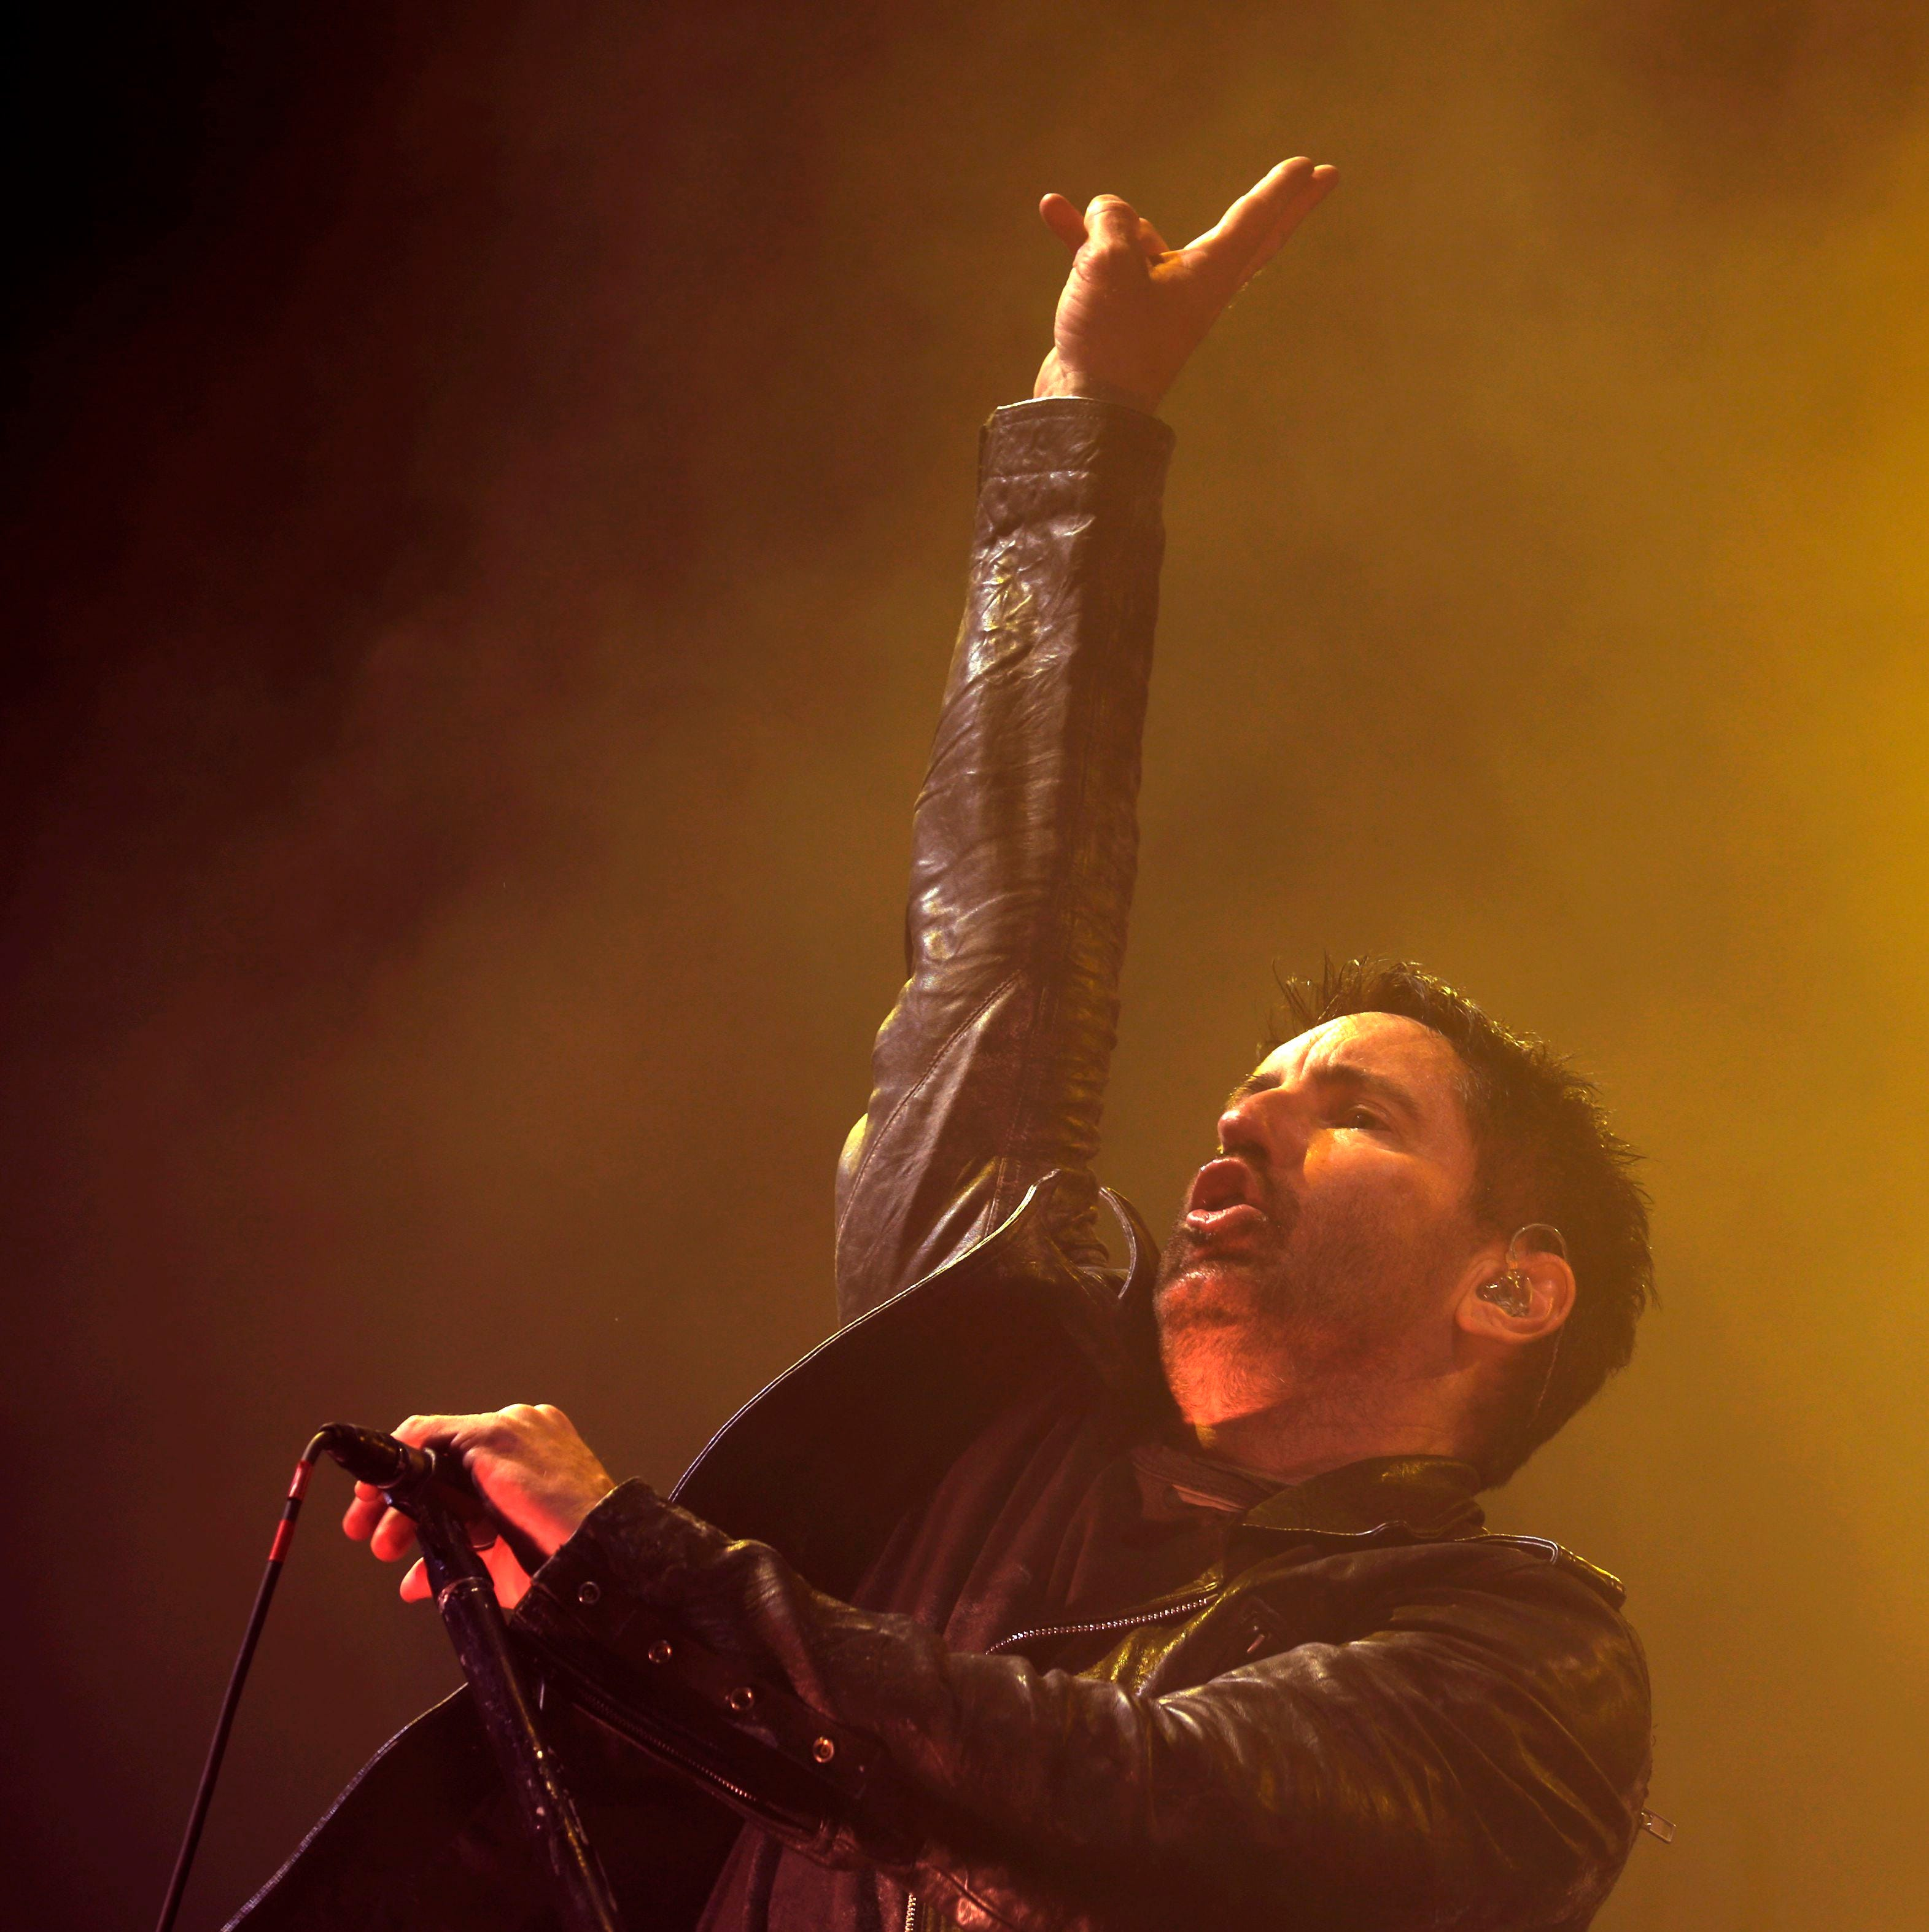 Detroit concerts: Nine Inch Nails, Twenty One Pilots, more